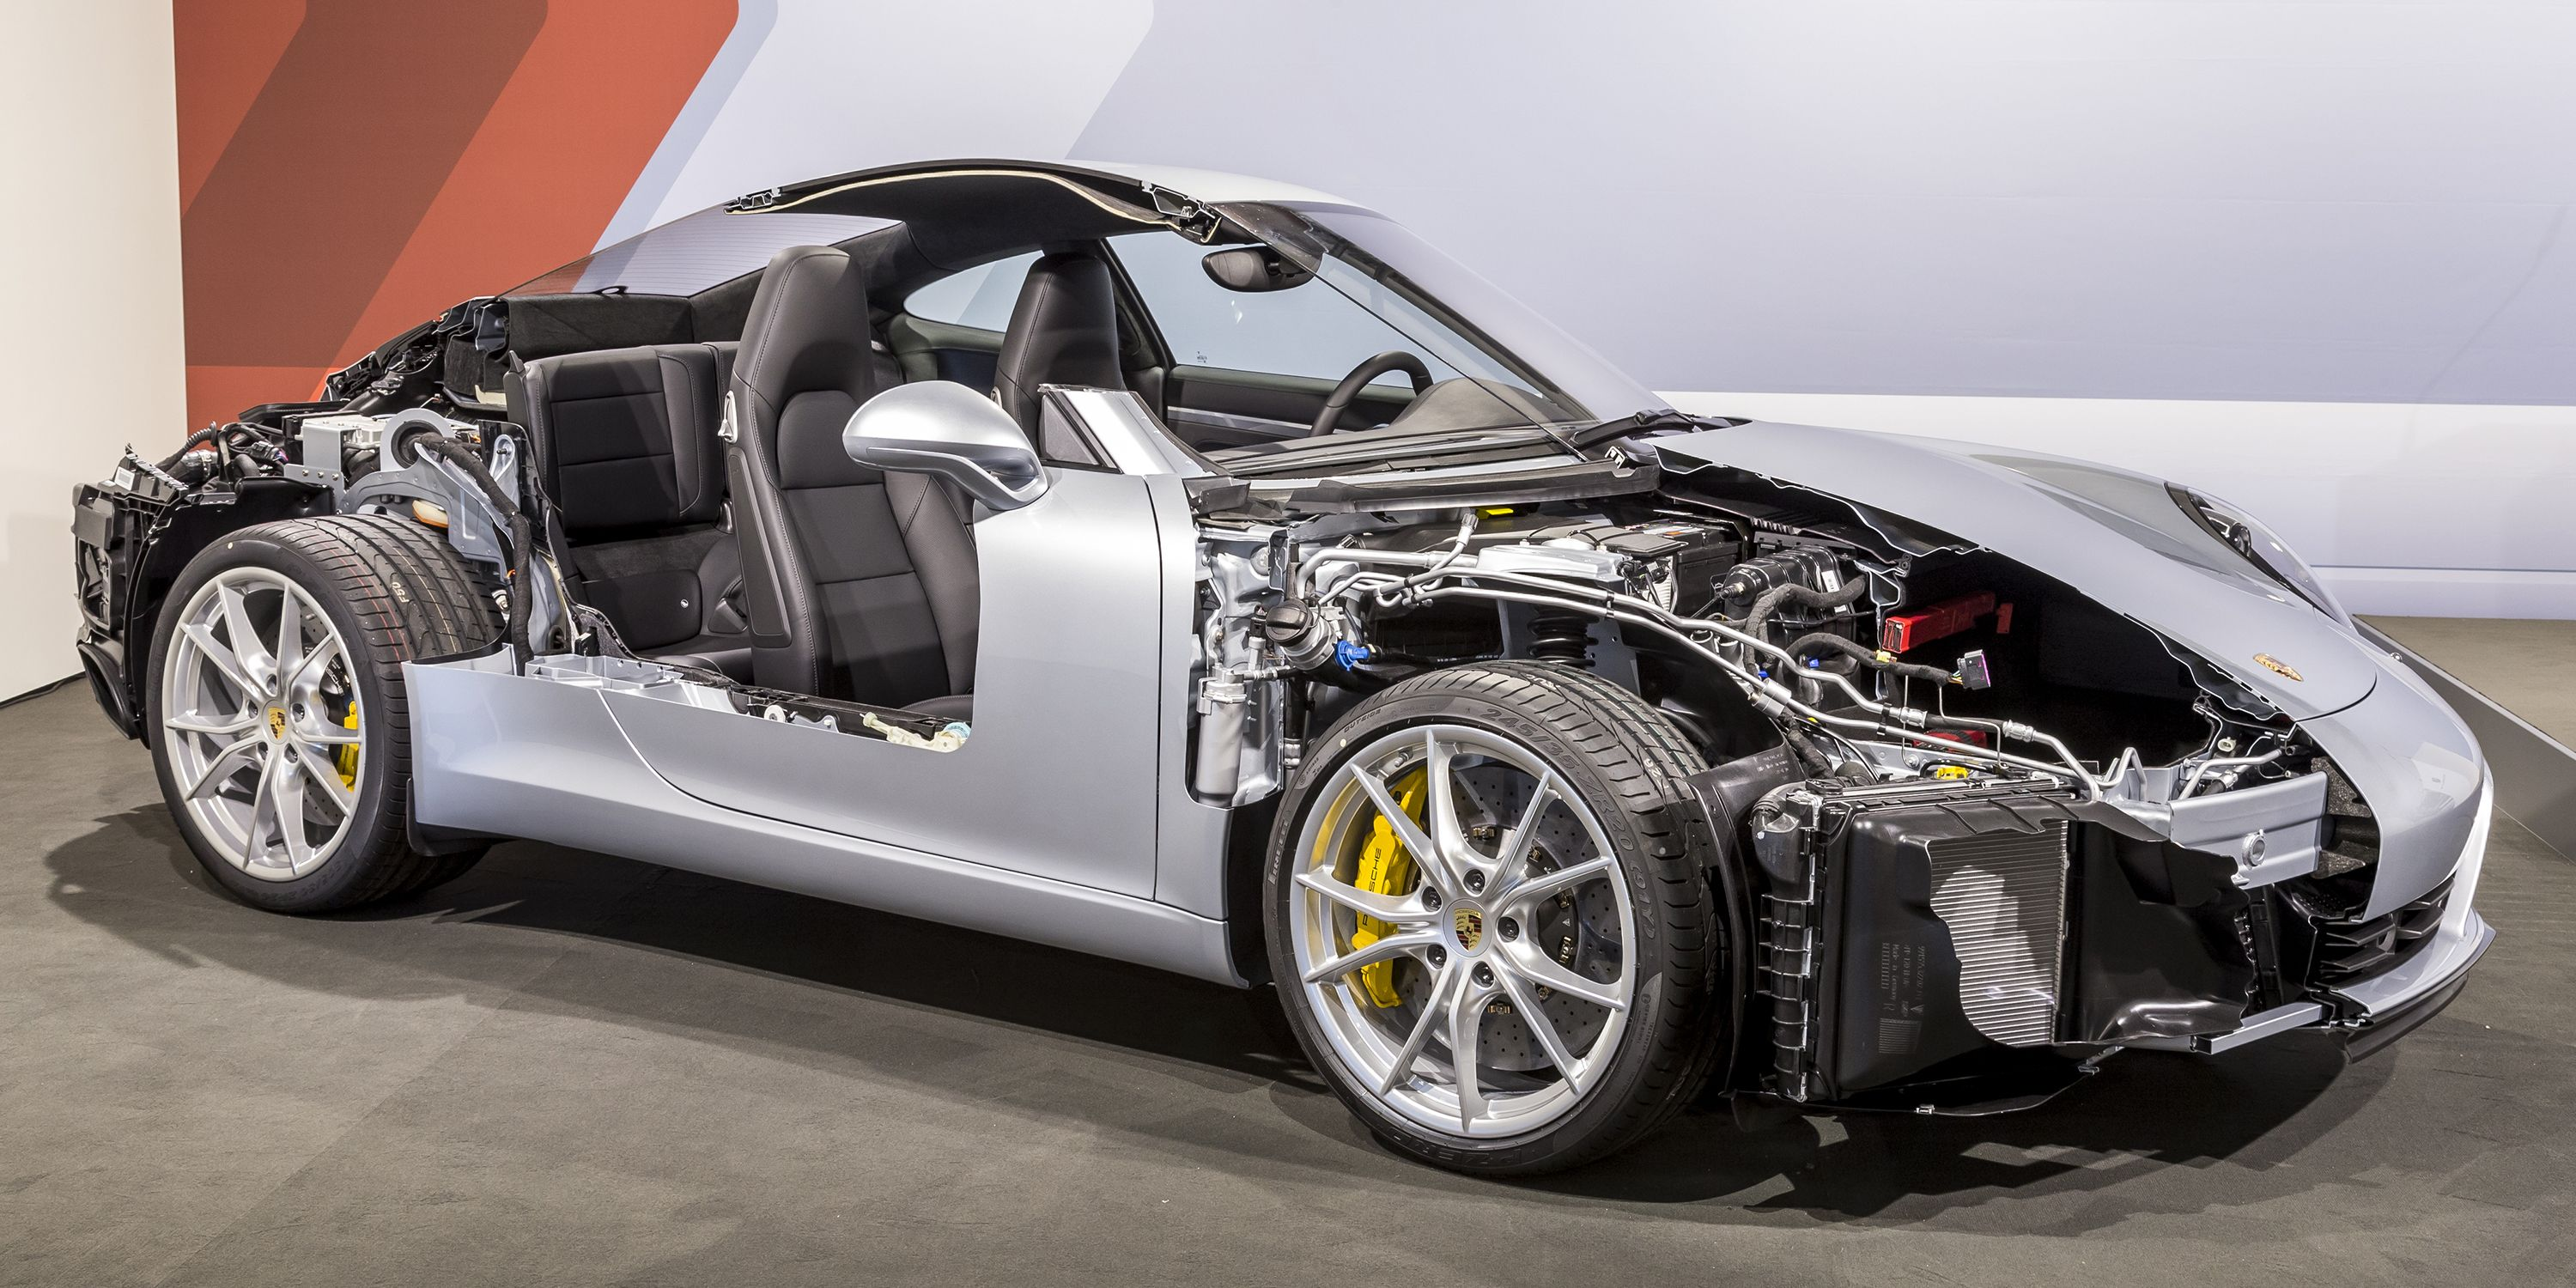 10 Things You Need To Know About The Turbocharged 2017 Porsche 911 991 Engine Diagram Carrera